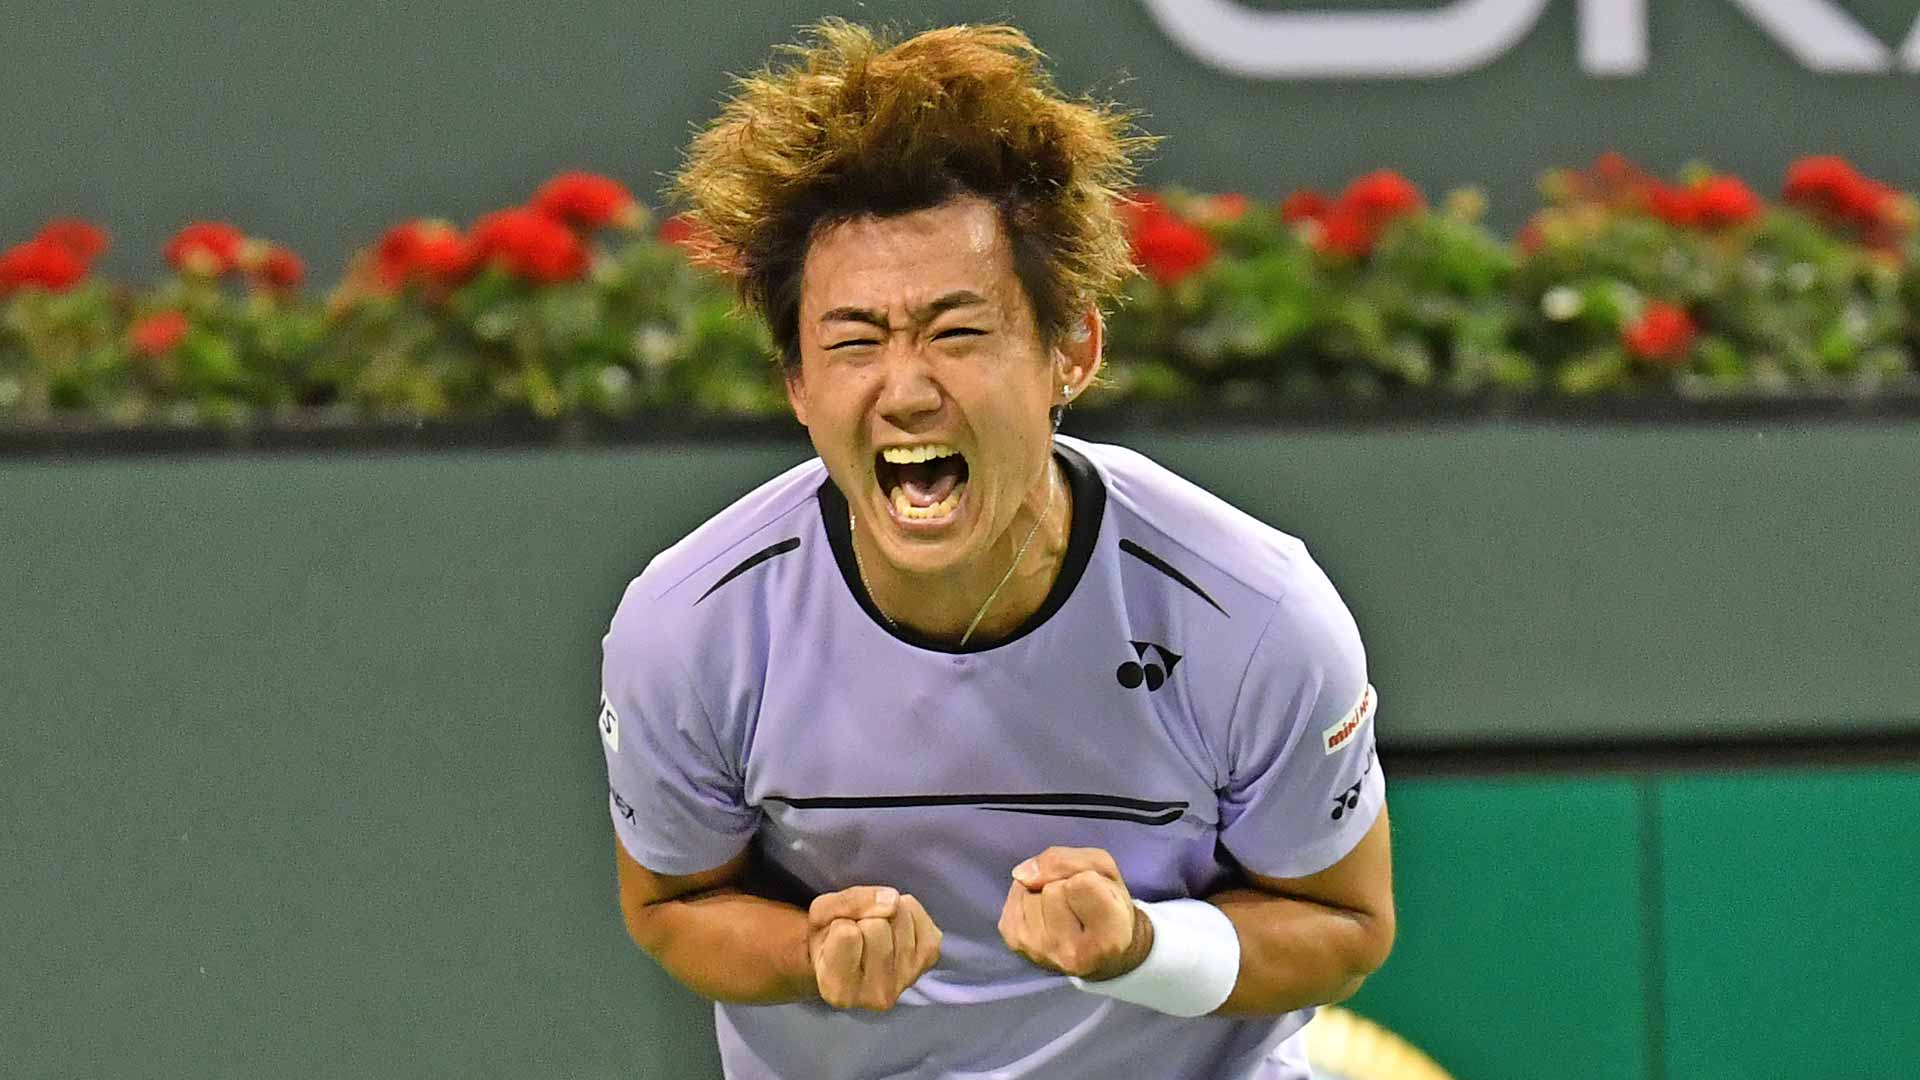 Yoshihito Nishioka celebrates his third-round win at the 2019 BNP Paribas Open.